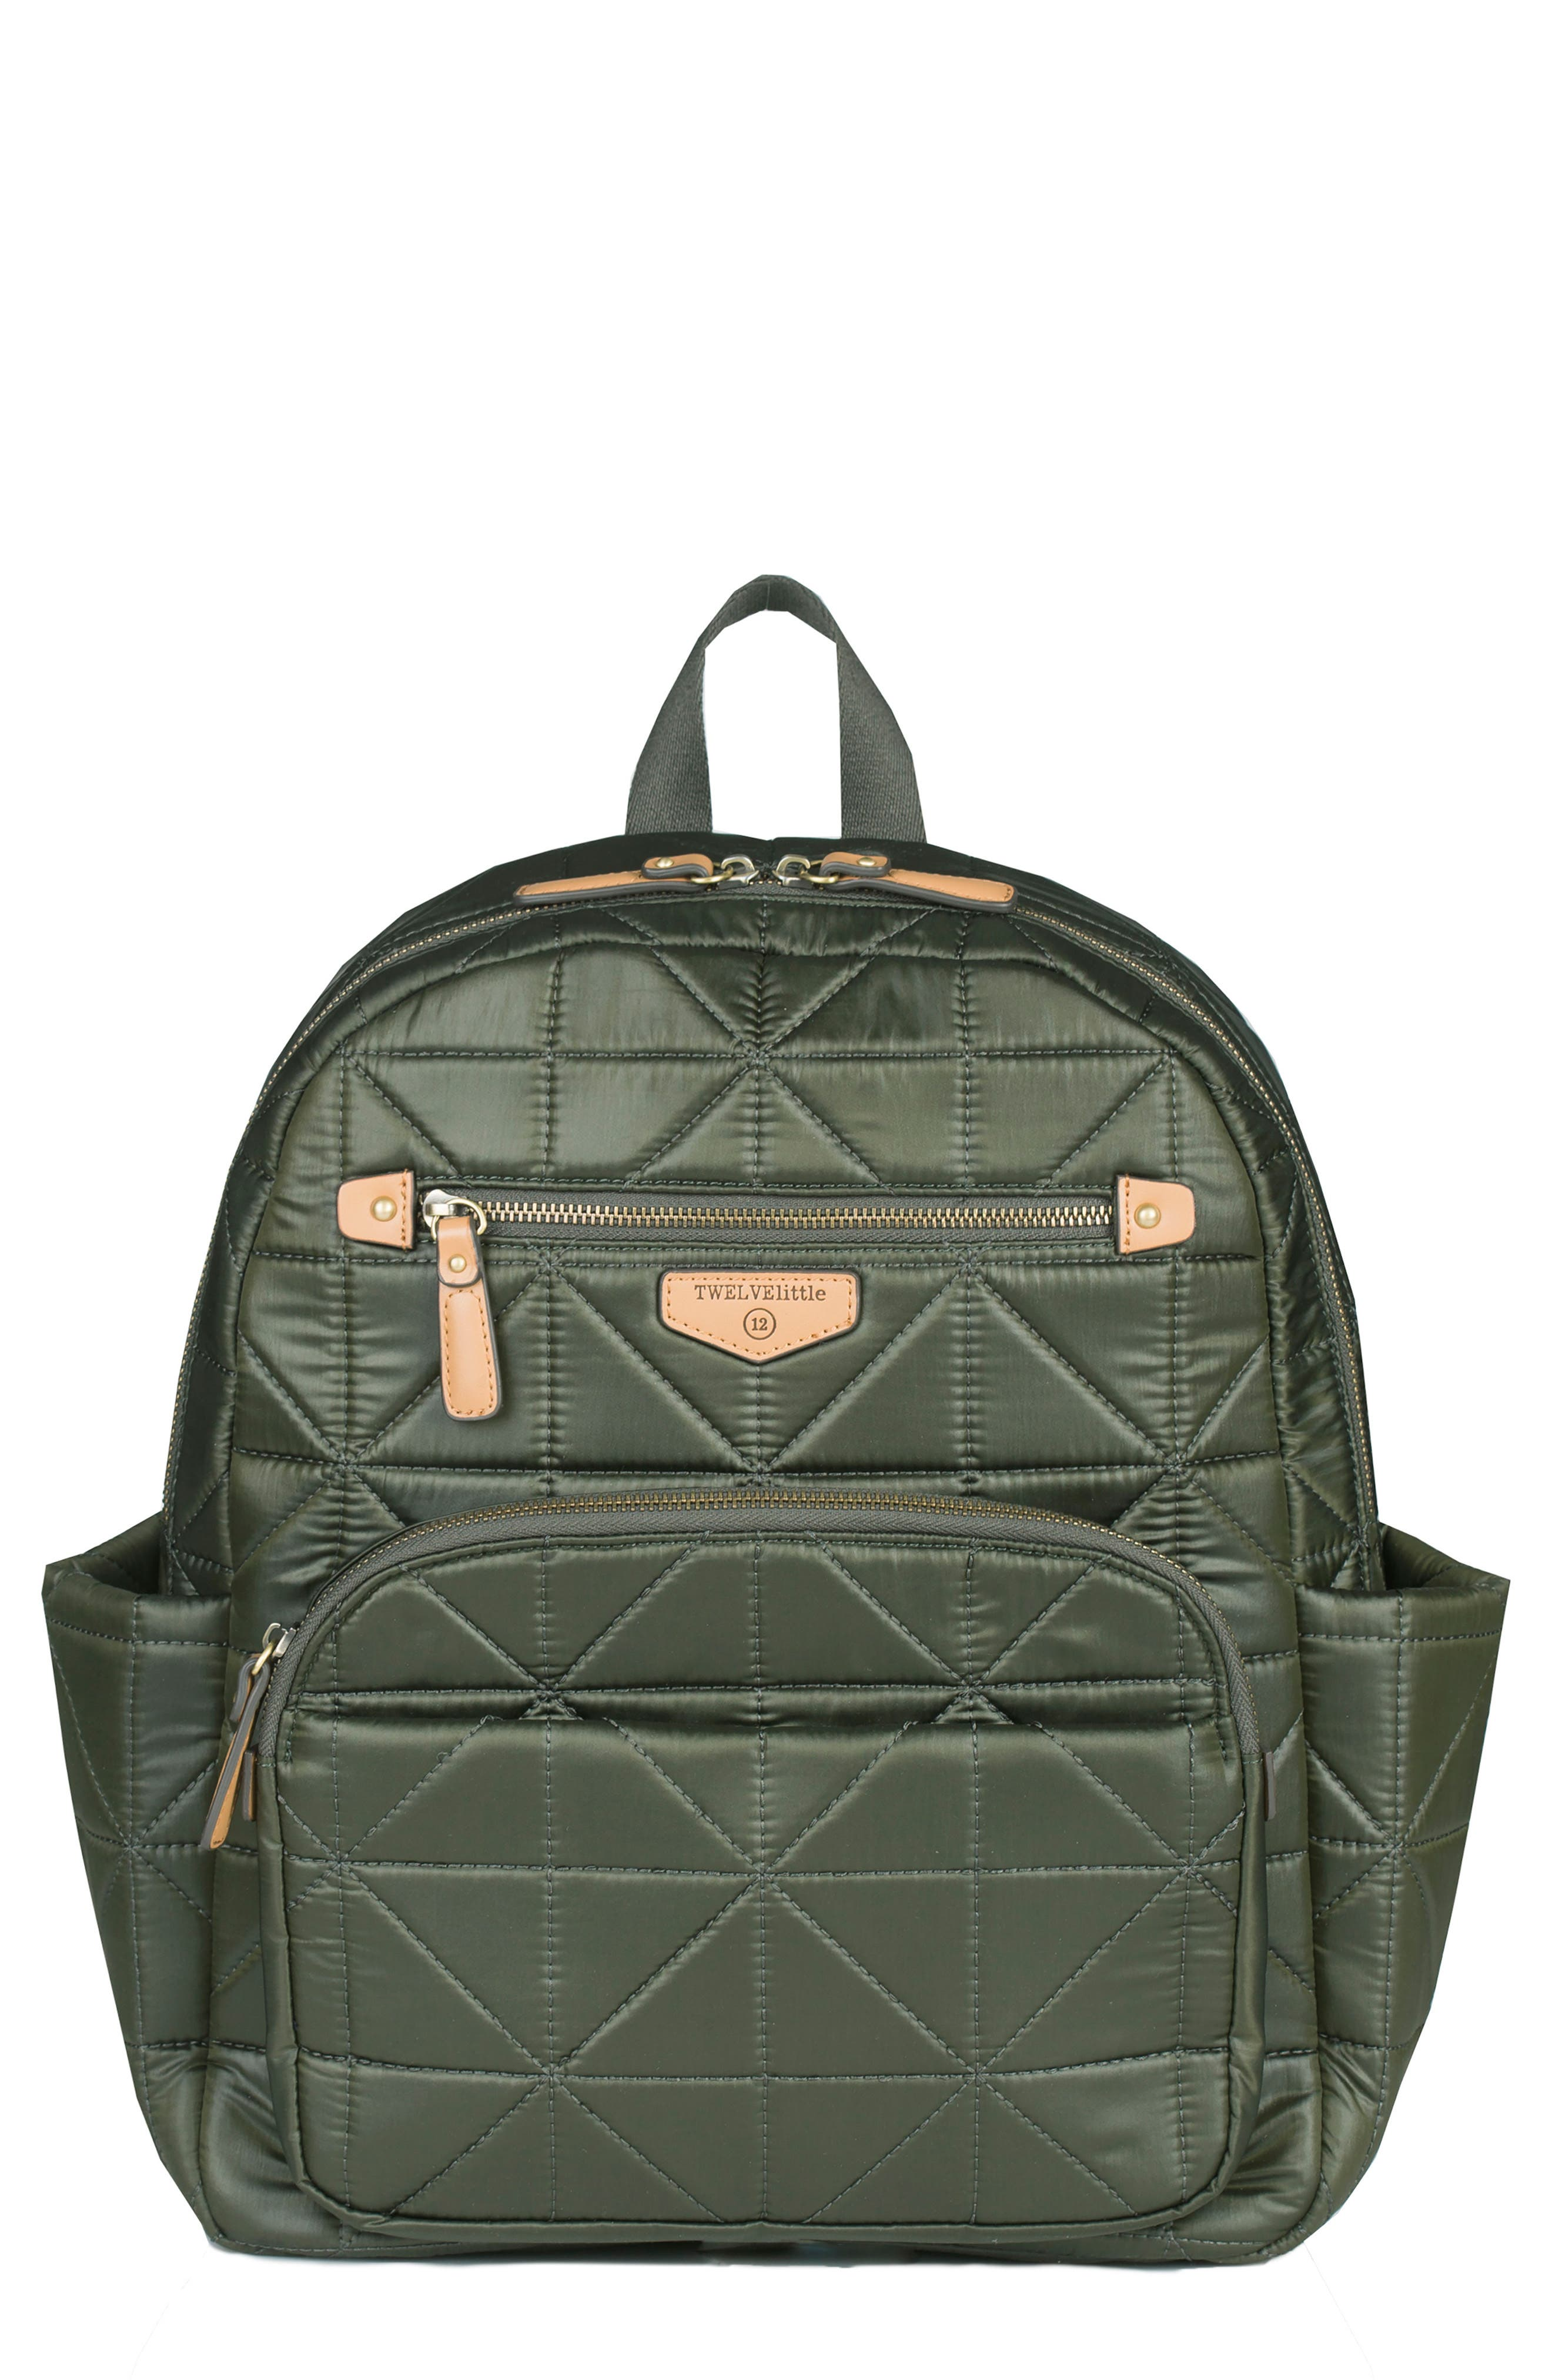 Main Image - TWELVElittle 'Companion Backpack' Quilted Nylon Diaper Bag